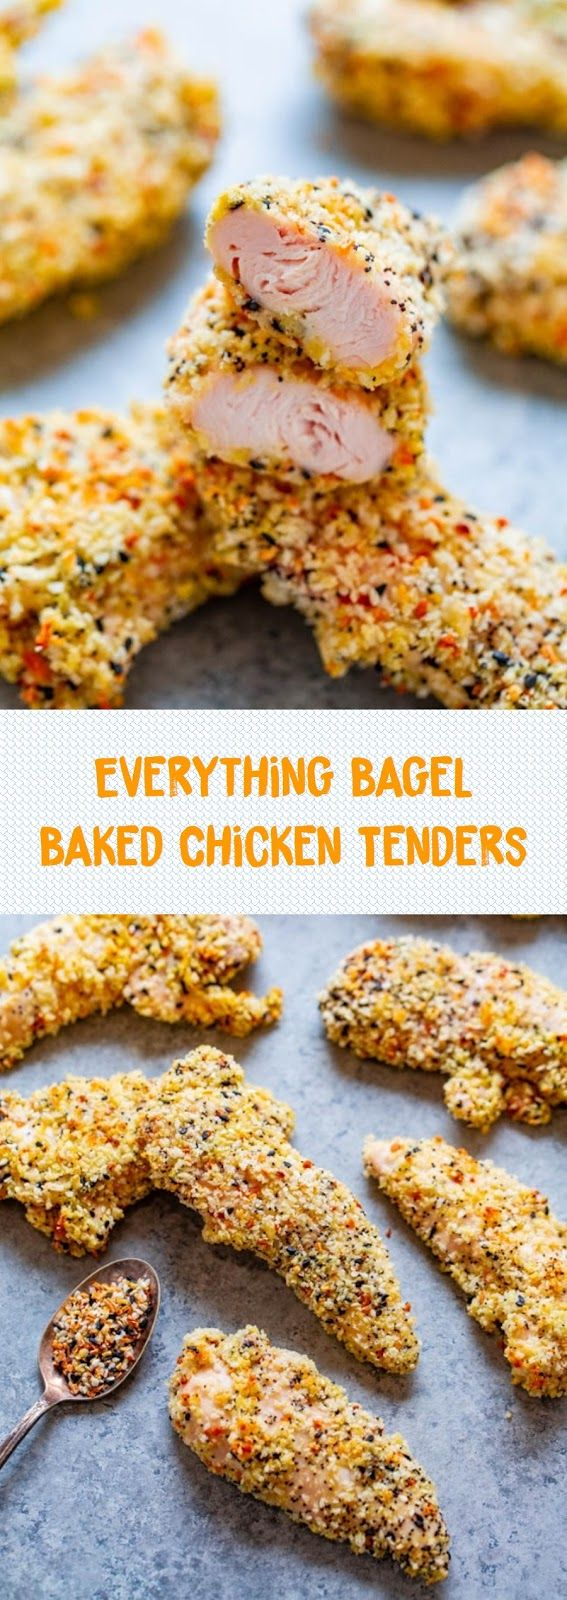 Photo of Everything Bagel Baked Chicken Tenders